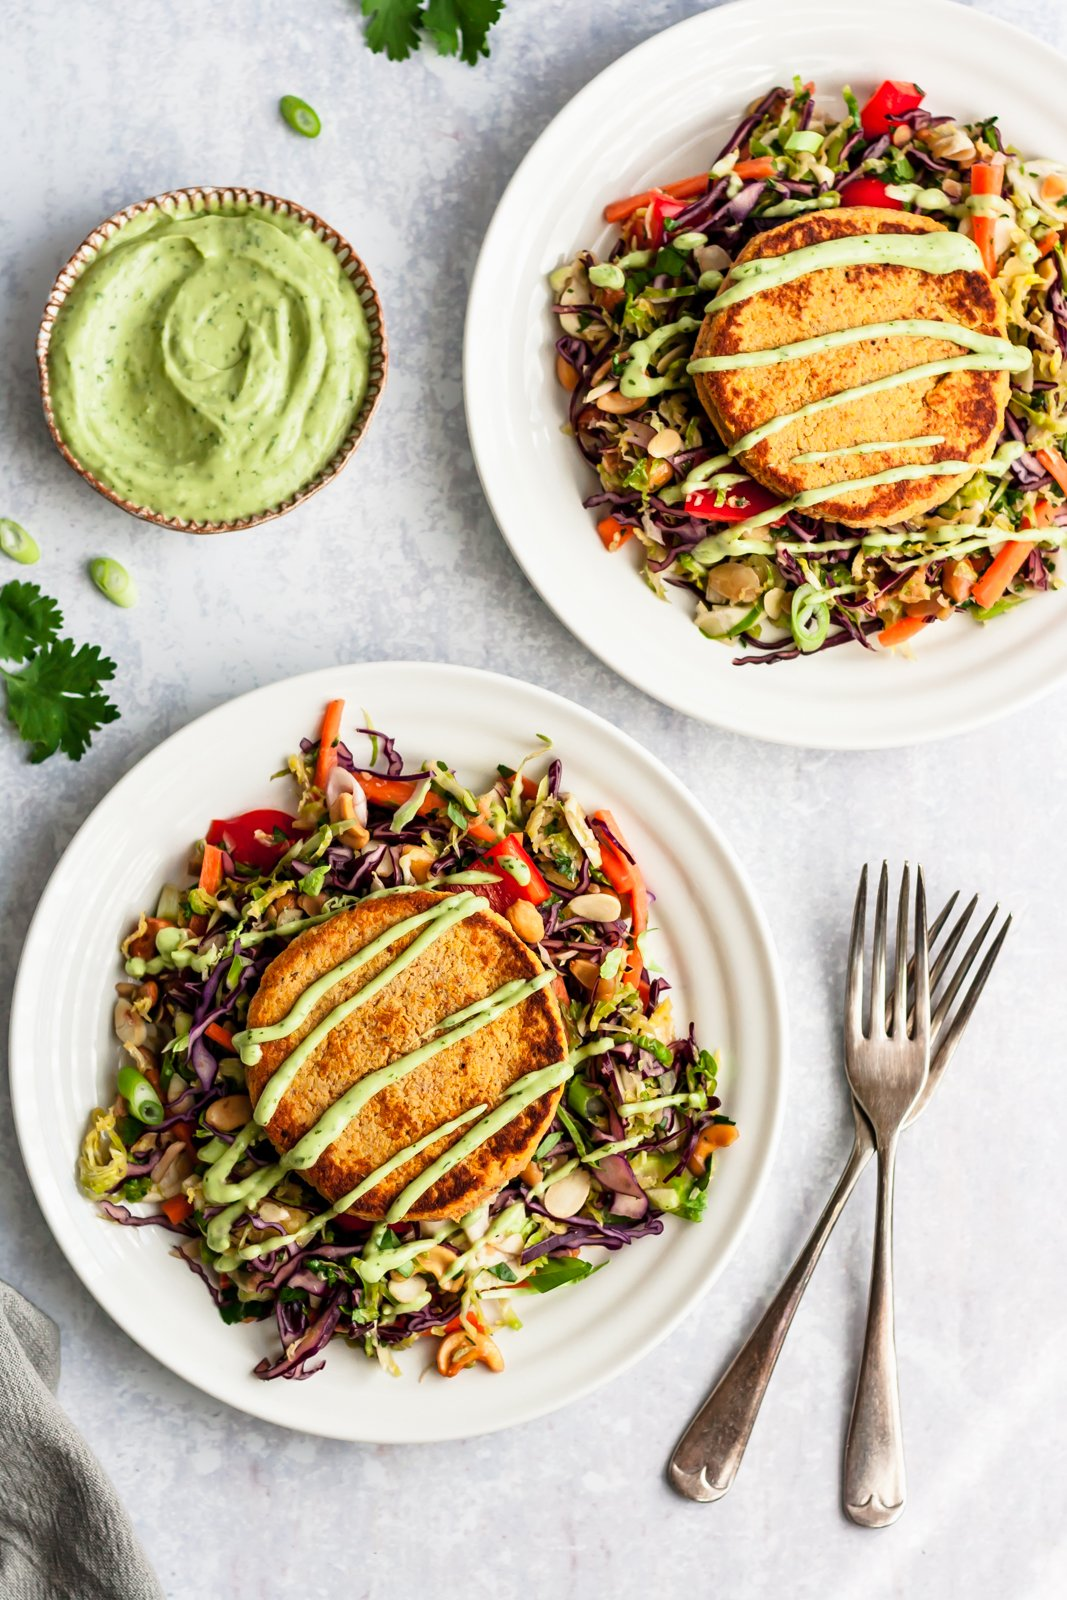 low carb salmon cakes on two plates with salad